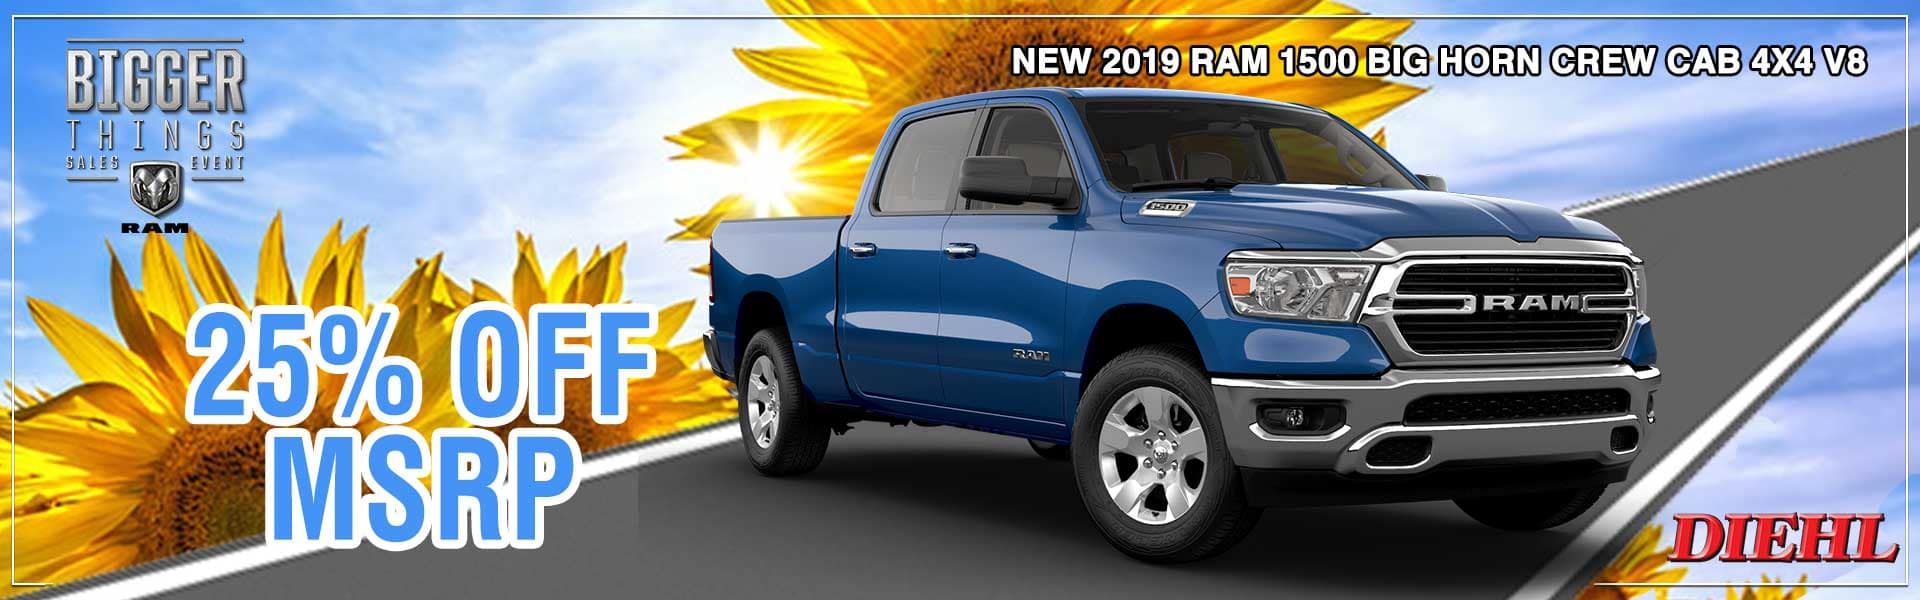 Diehl of Robinson Chrysler Jeep Dodge Ram. Robinson Township, PA 15136. New and used sales, service for all makes and models, parts, accessories, Mopar, collision center body shop. RAM 1500 BIG HORN